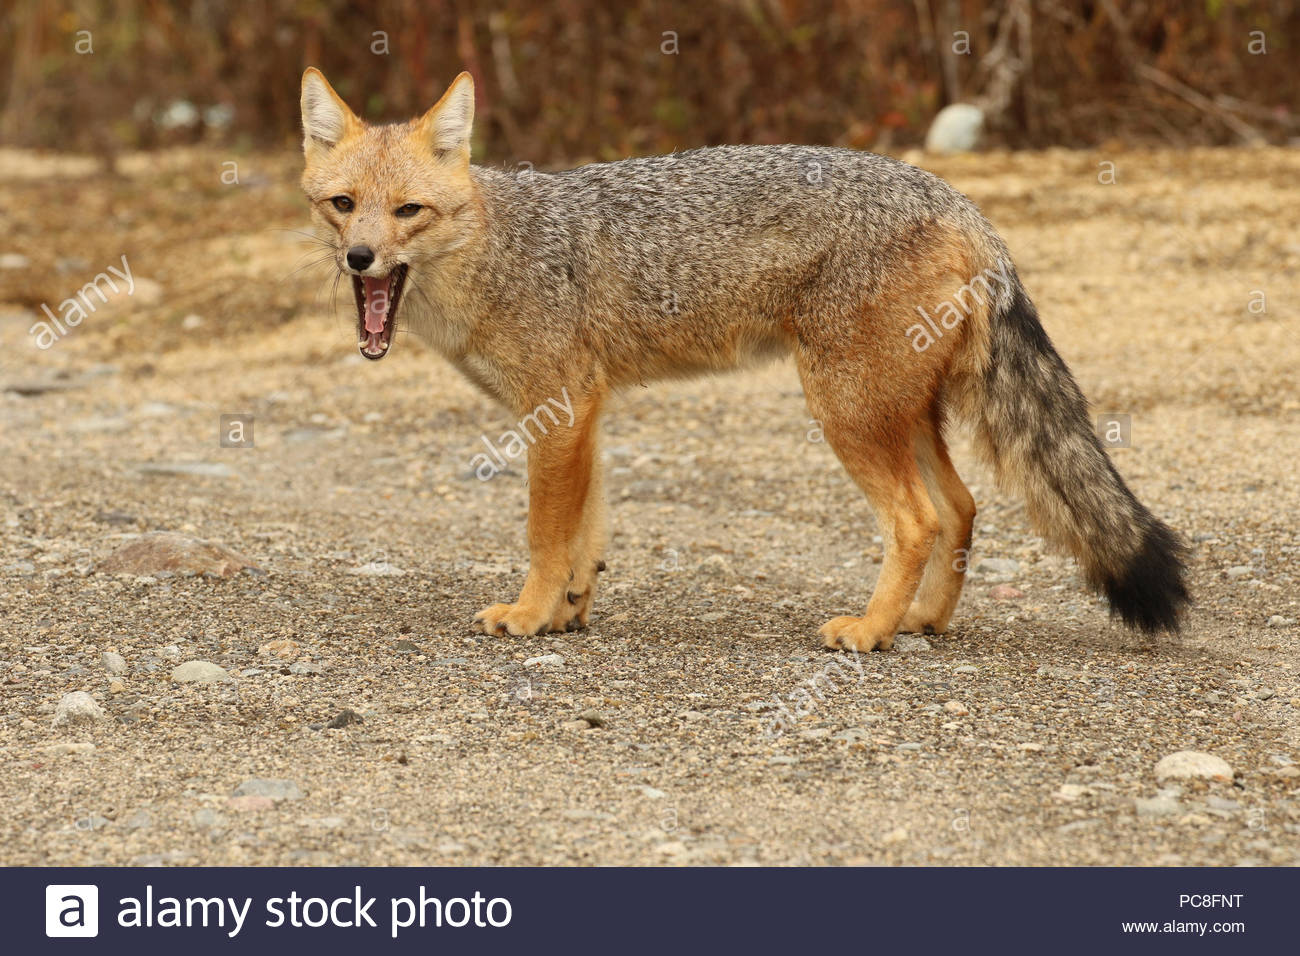 A culpeo or Andean fox, Lycalopex culpaeus, yawning - Stock Image